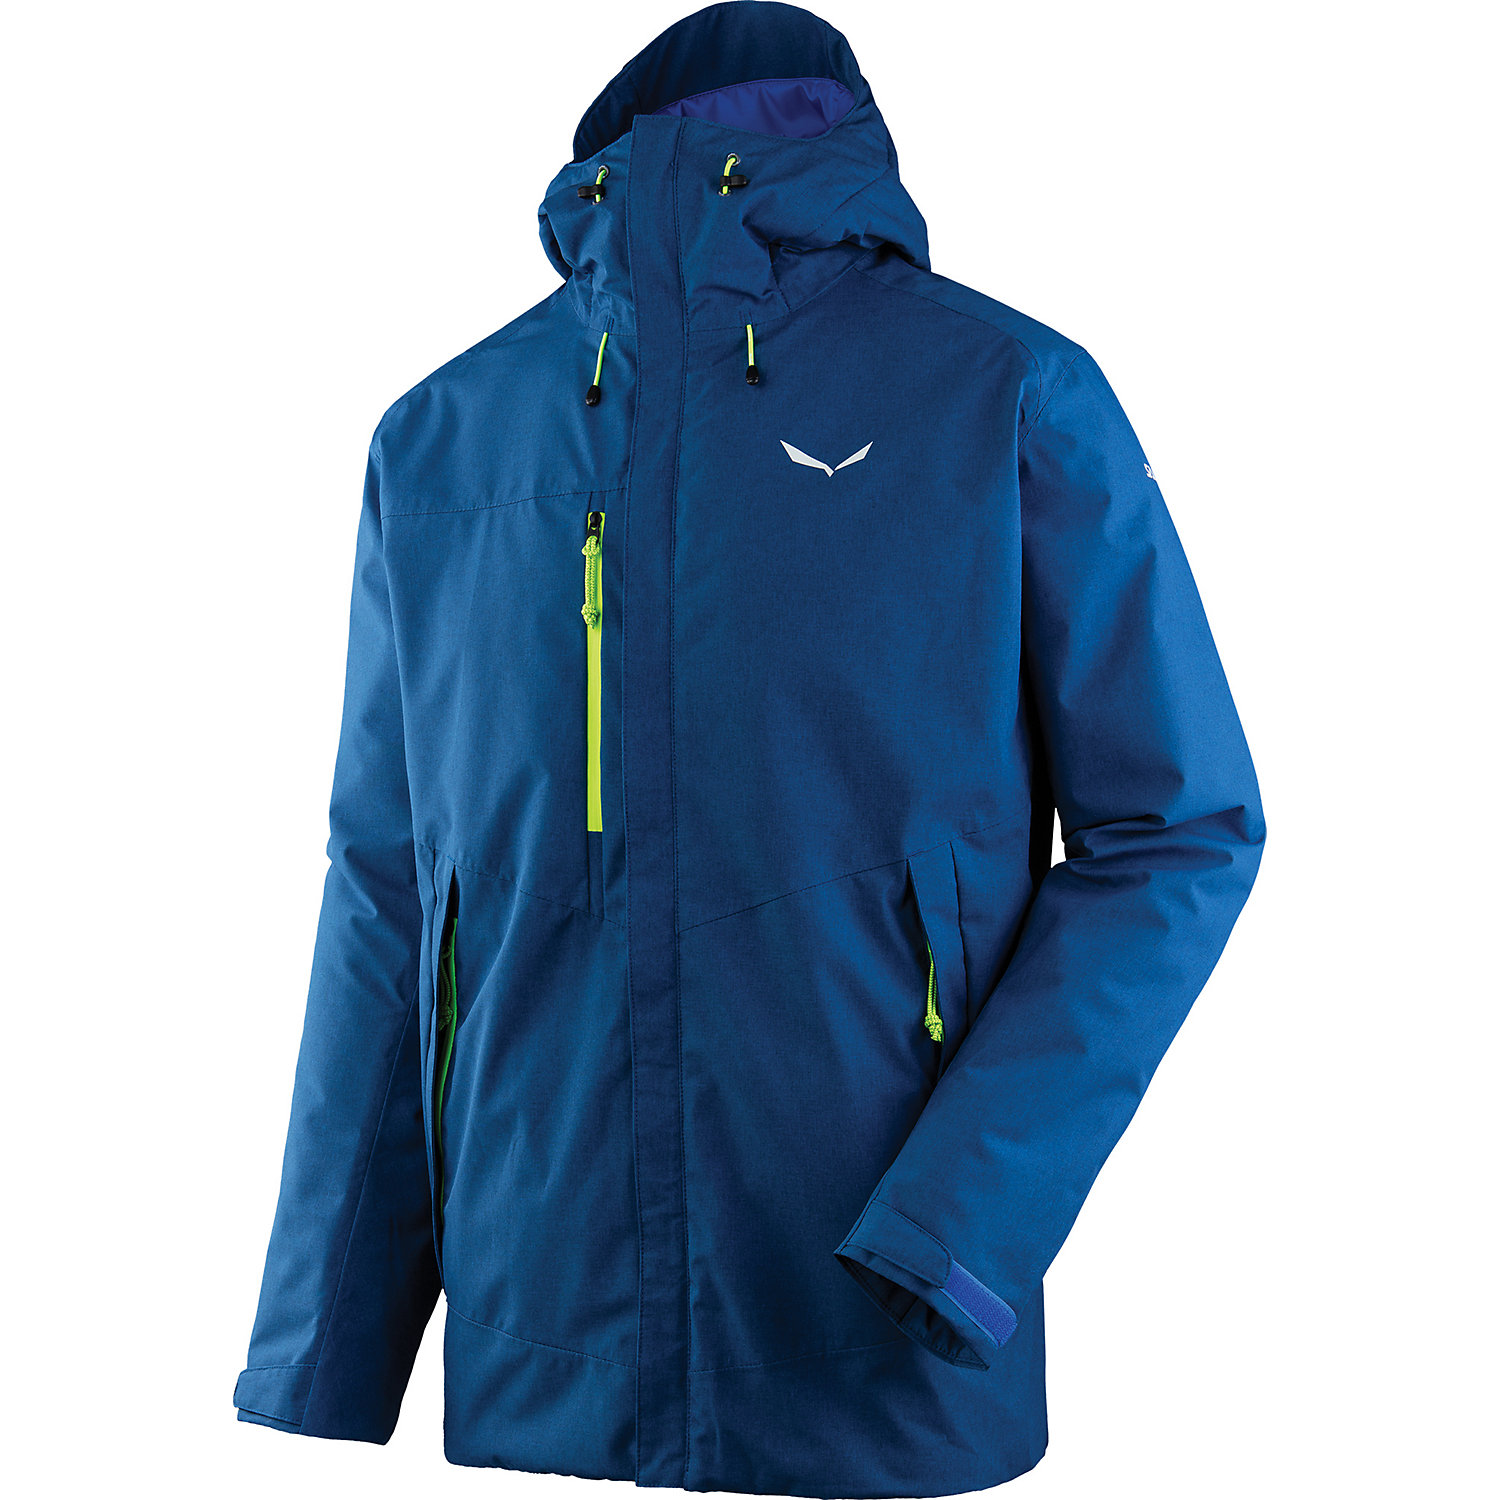 Salewa Children's Puez 2 PTX 2L Jacket Rain Jacket